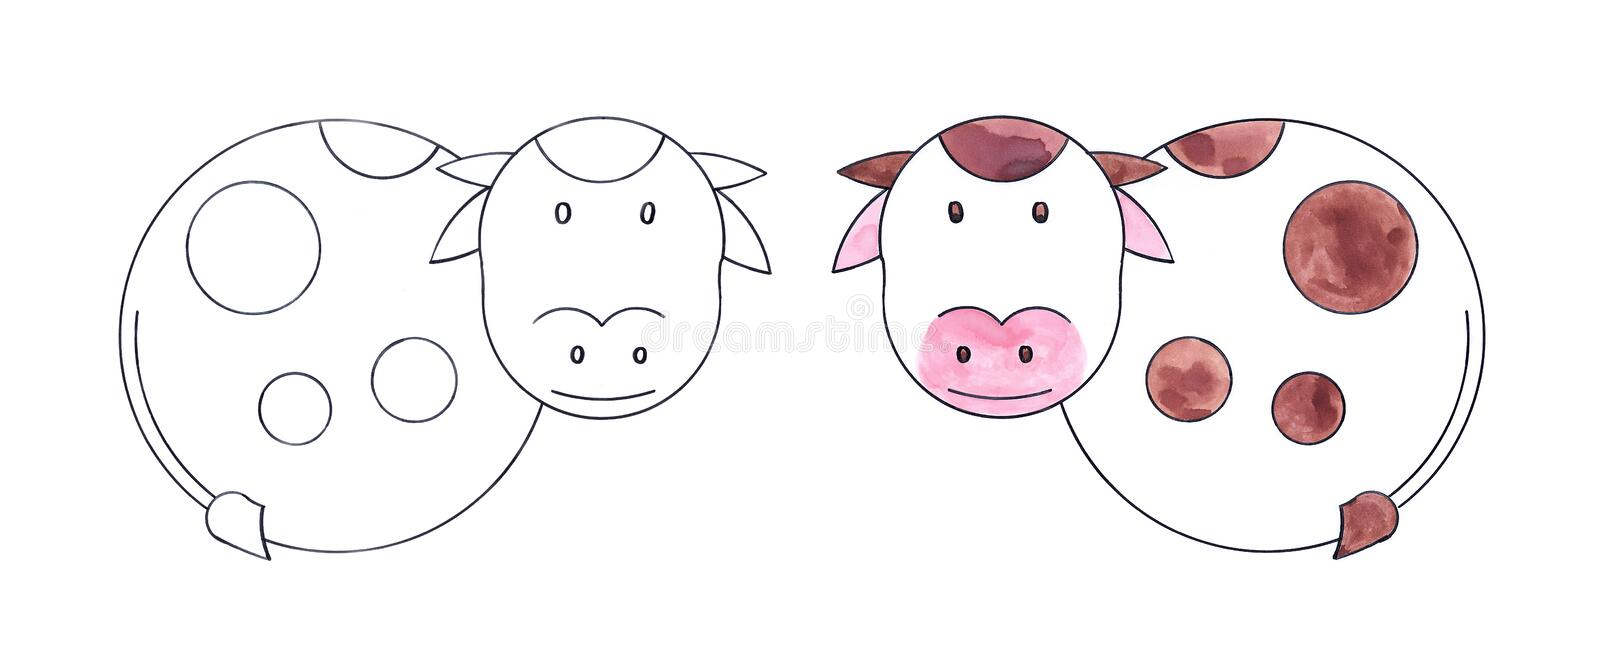 Download Happy cow stock illustration. Image of coloring, circle - 24632027